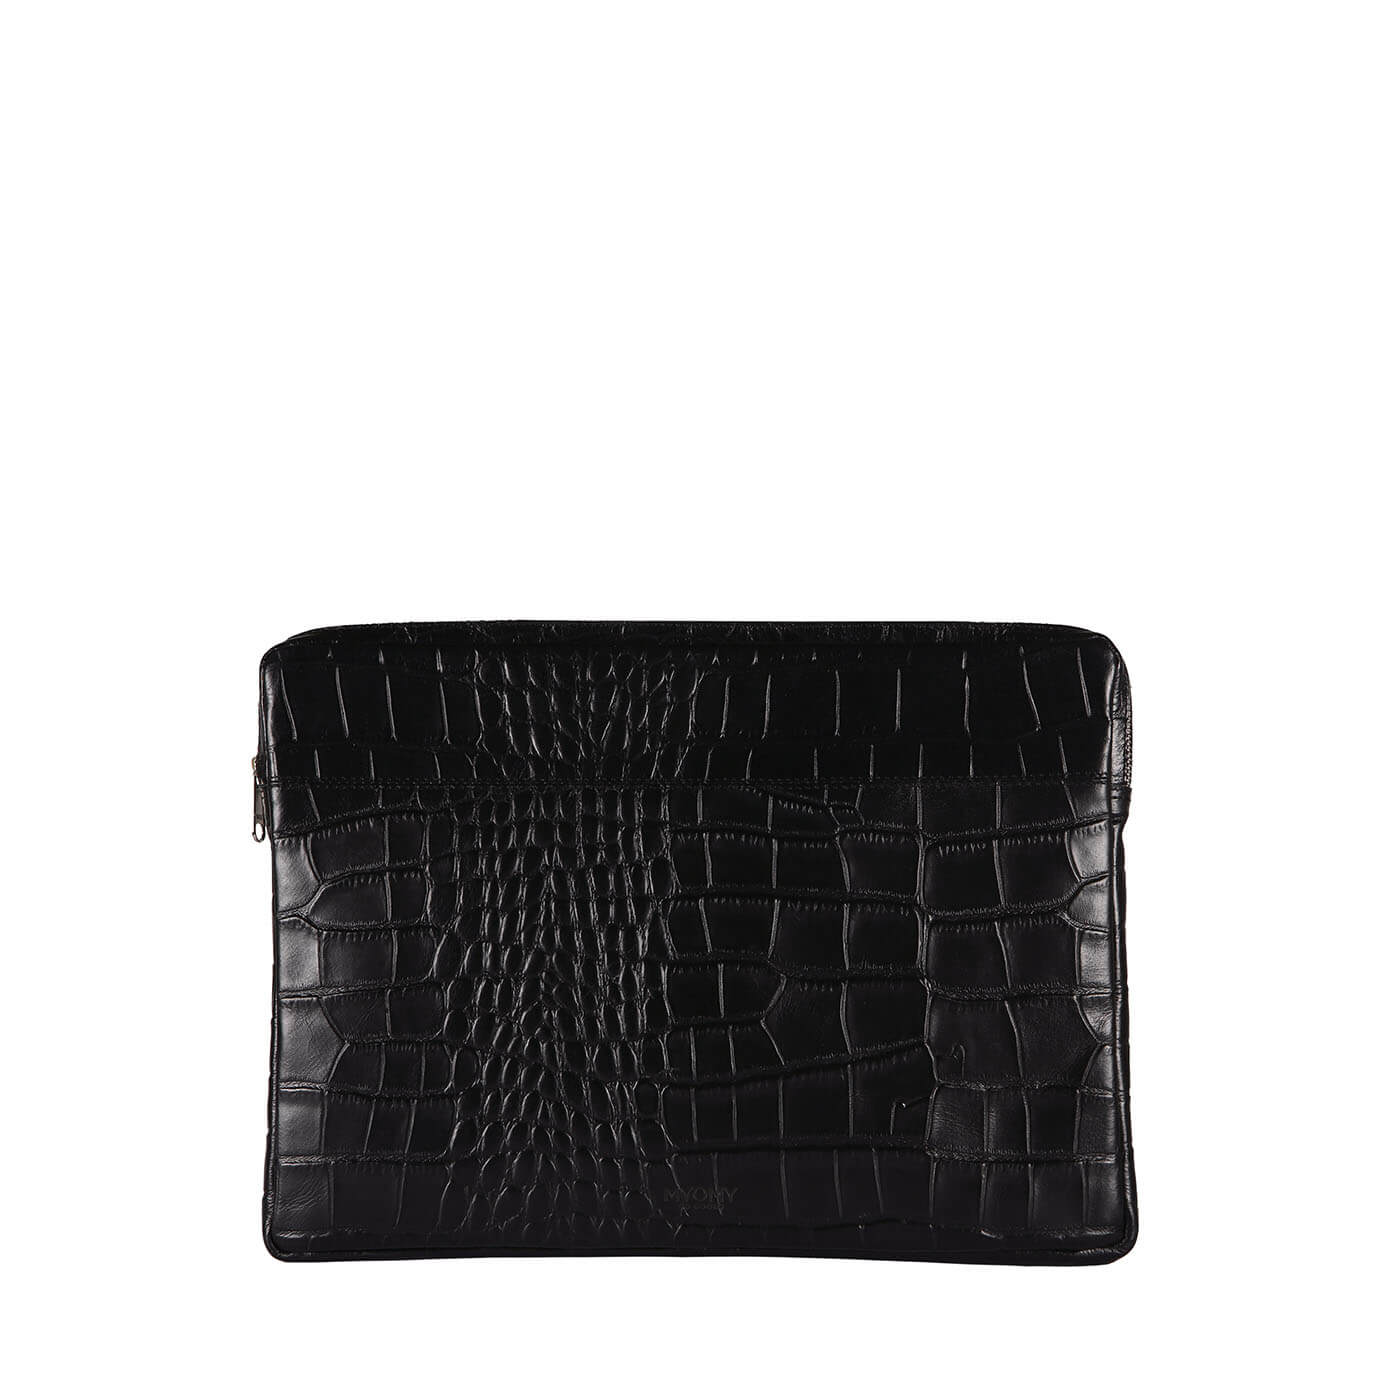 MY PHILIP BAG Laptop Sleeve 15 inch – croco black